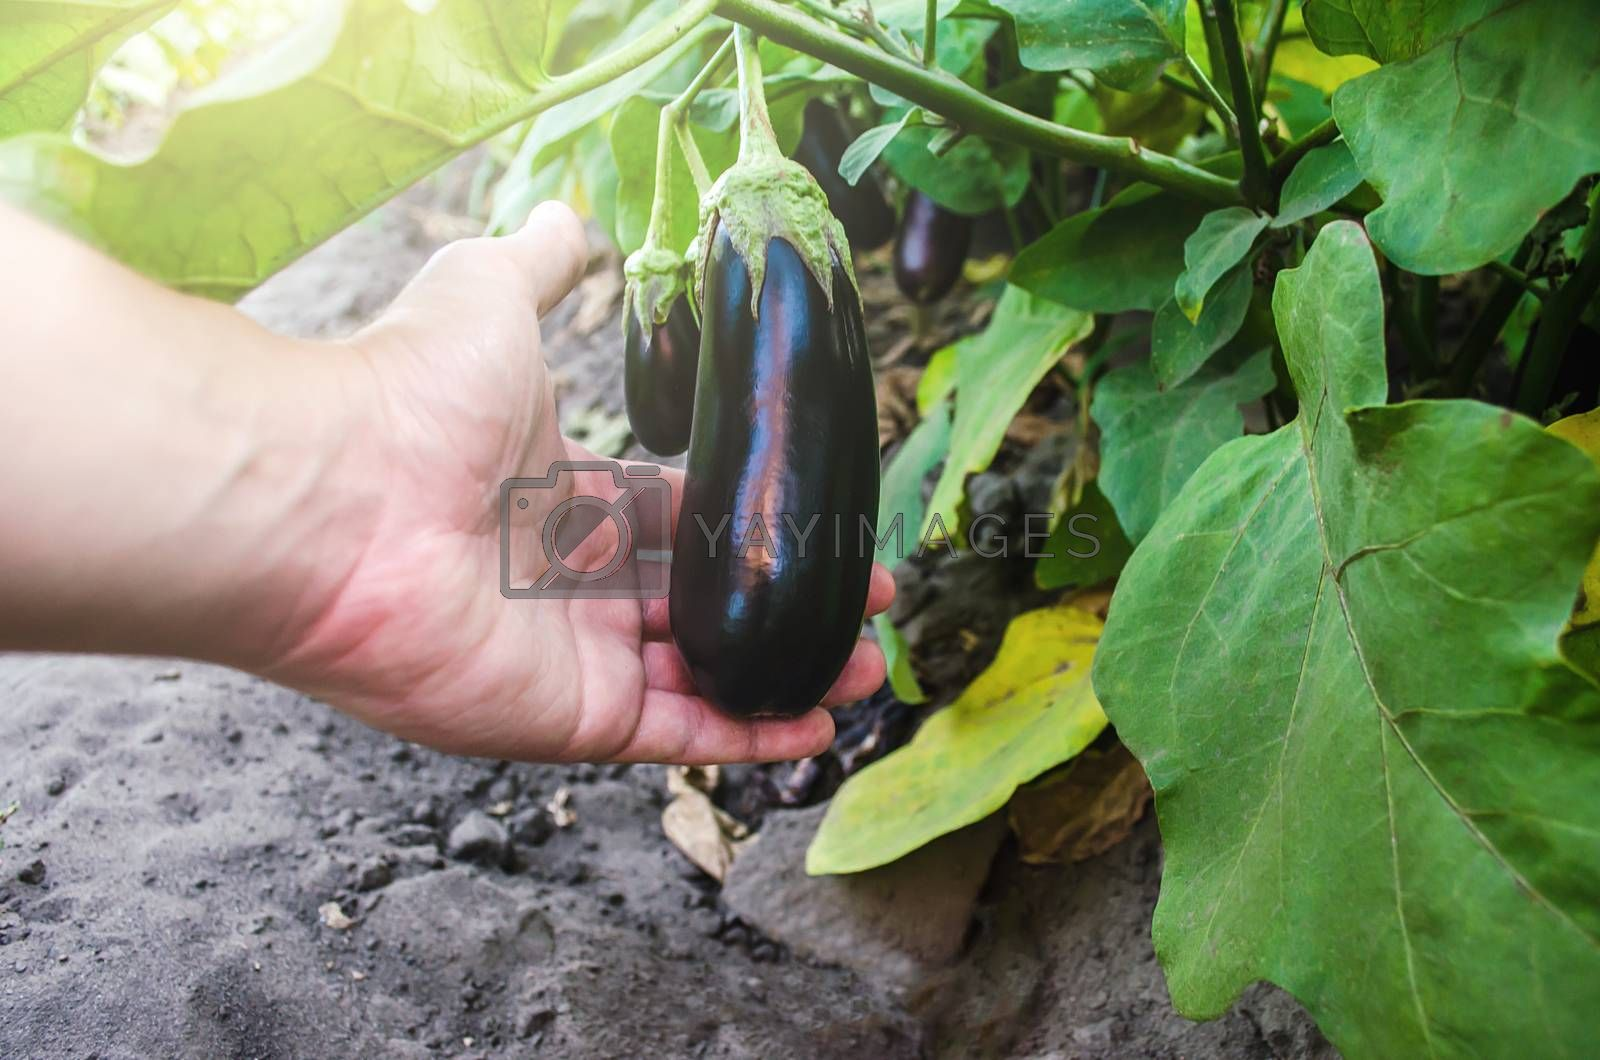 The farmer holds an unpicked eggplant in his hand. Agriculture, farm. Growing fresh organic vegetables on the farm. Food production. Solanum melongena L. Agroindustry and agribusiness.